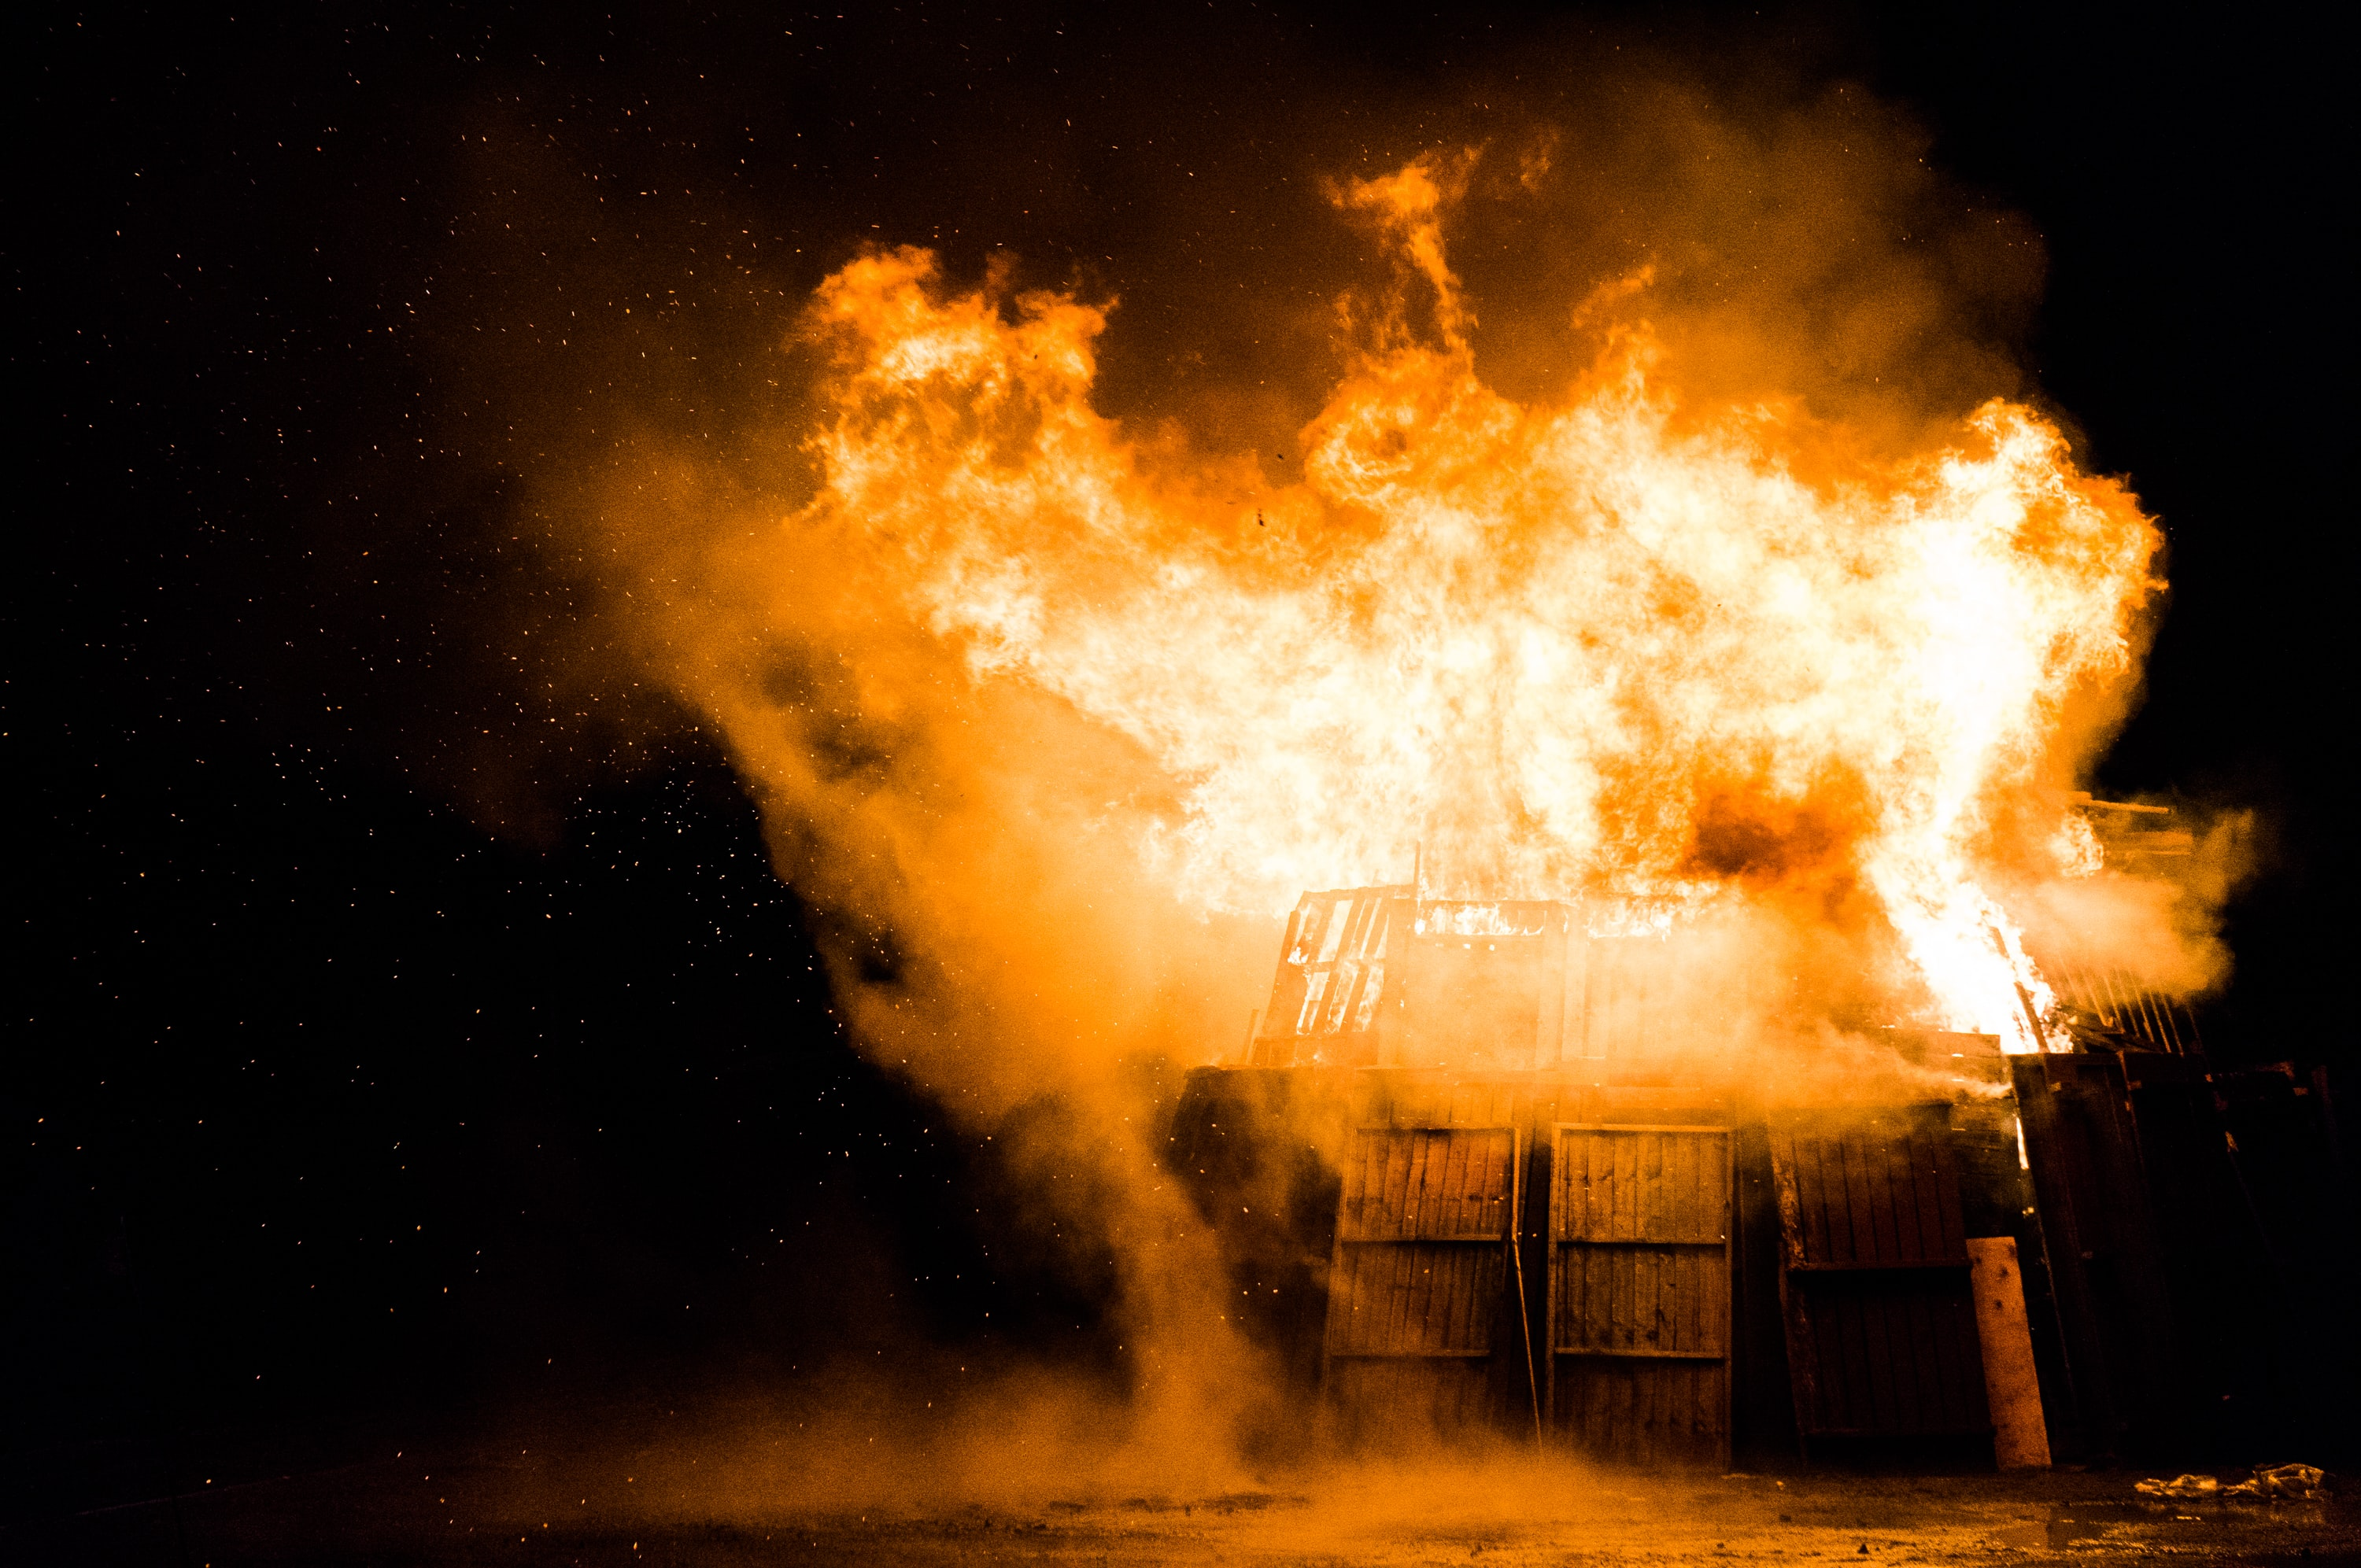 fire damage insurance claim tips